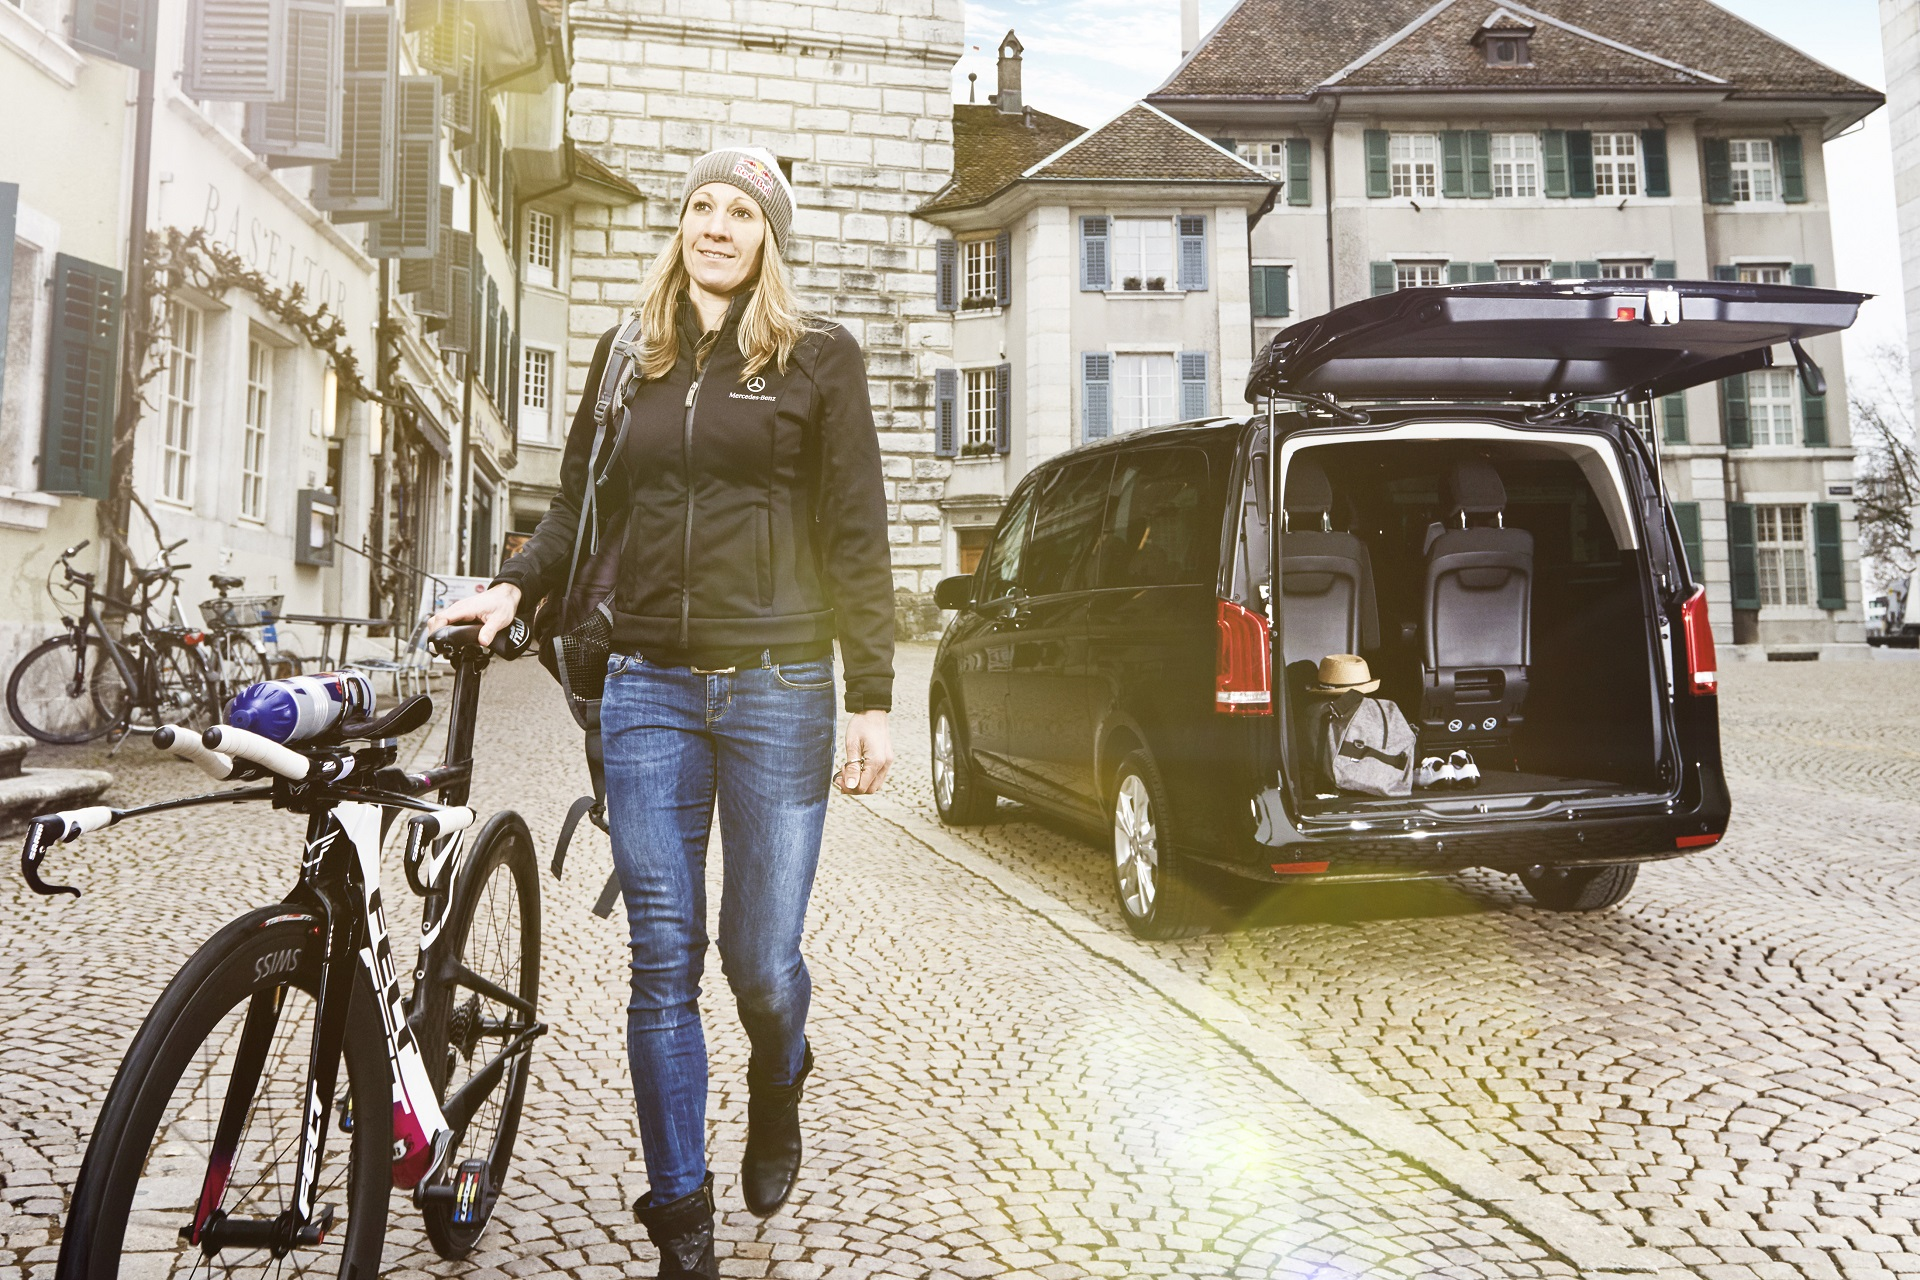 Stylish appearance at races, generous space for equipment: Daniela Ryf, professional triathlete and new brand ambassador for Mercedes-Benz Vans, with her V-Class.;